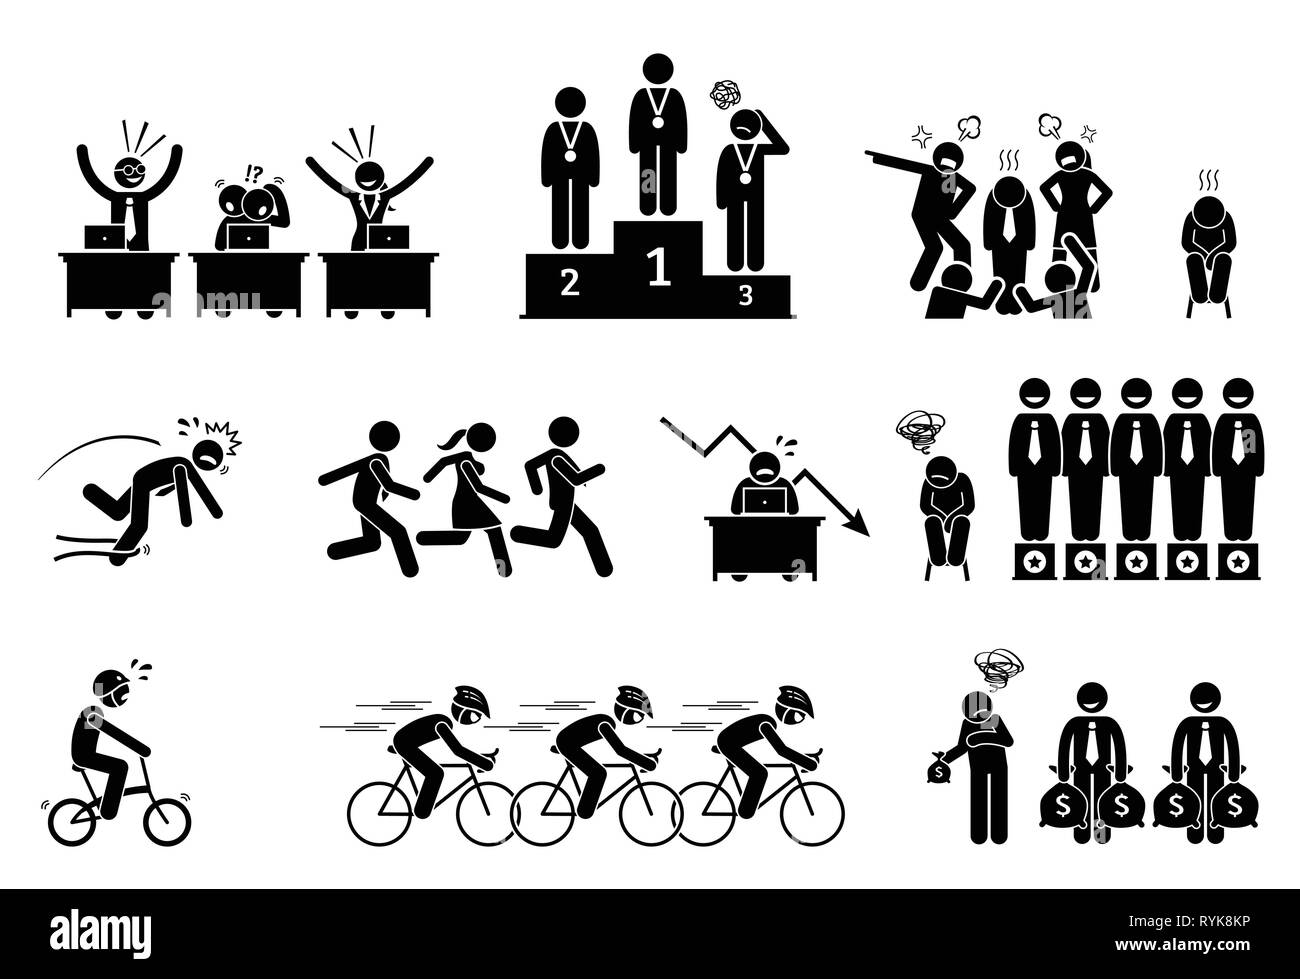 Unsuccessful and failure businessman. Pictogram depict a loser and laggard person. He is being slow, lousy, and perform badly in every work and compet - Stock Image